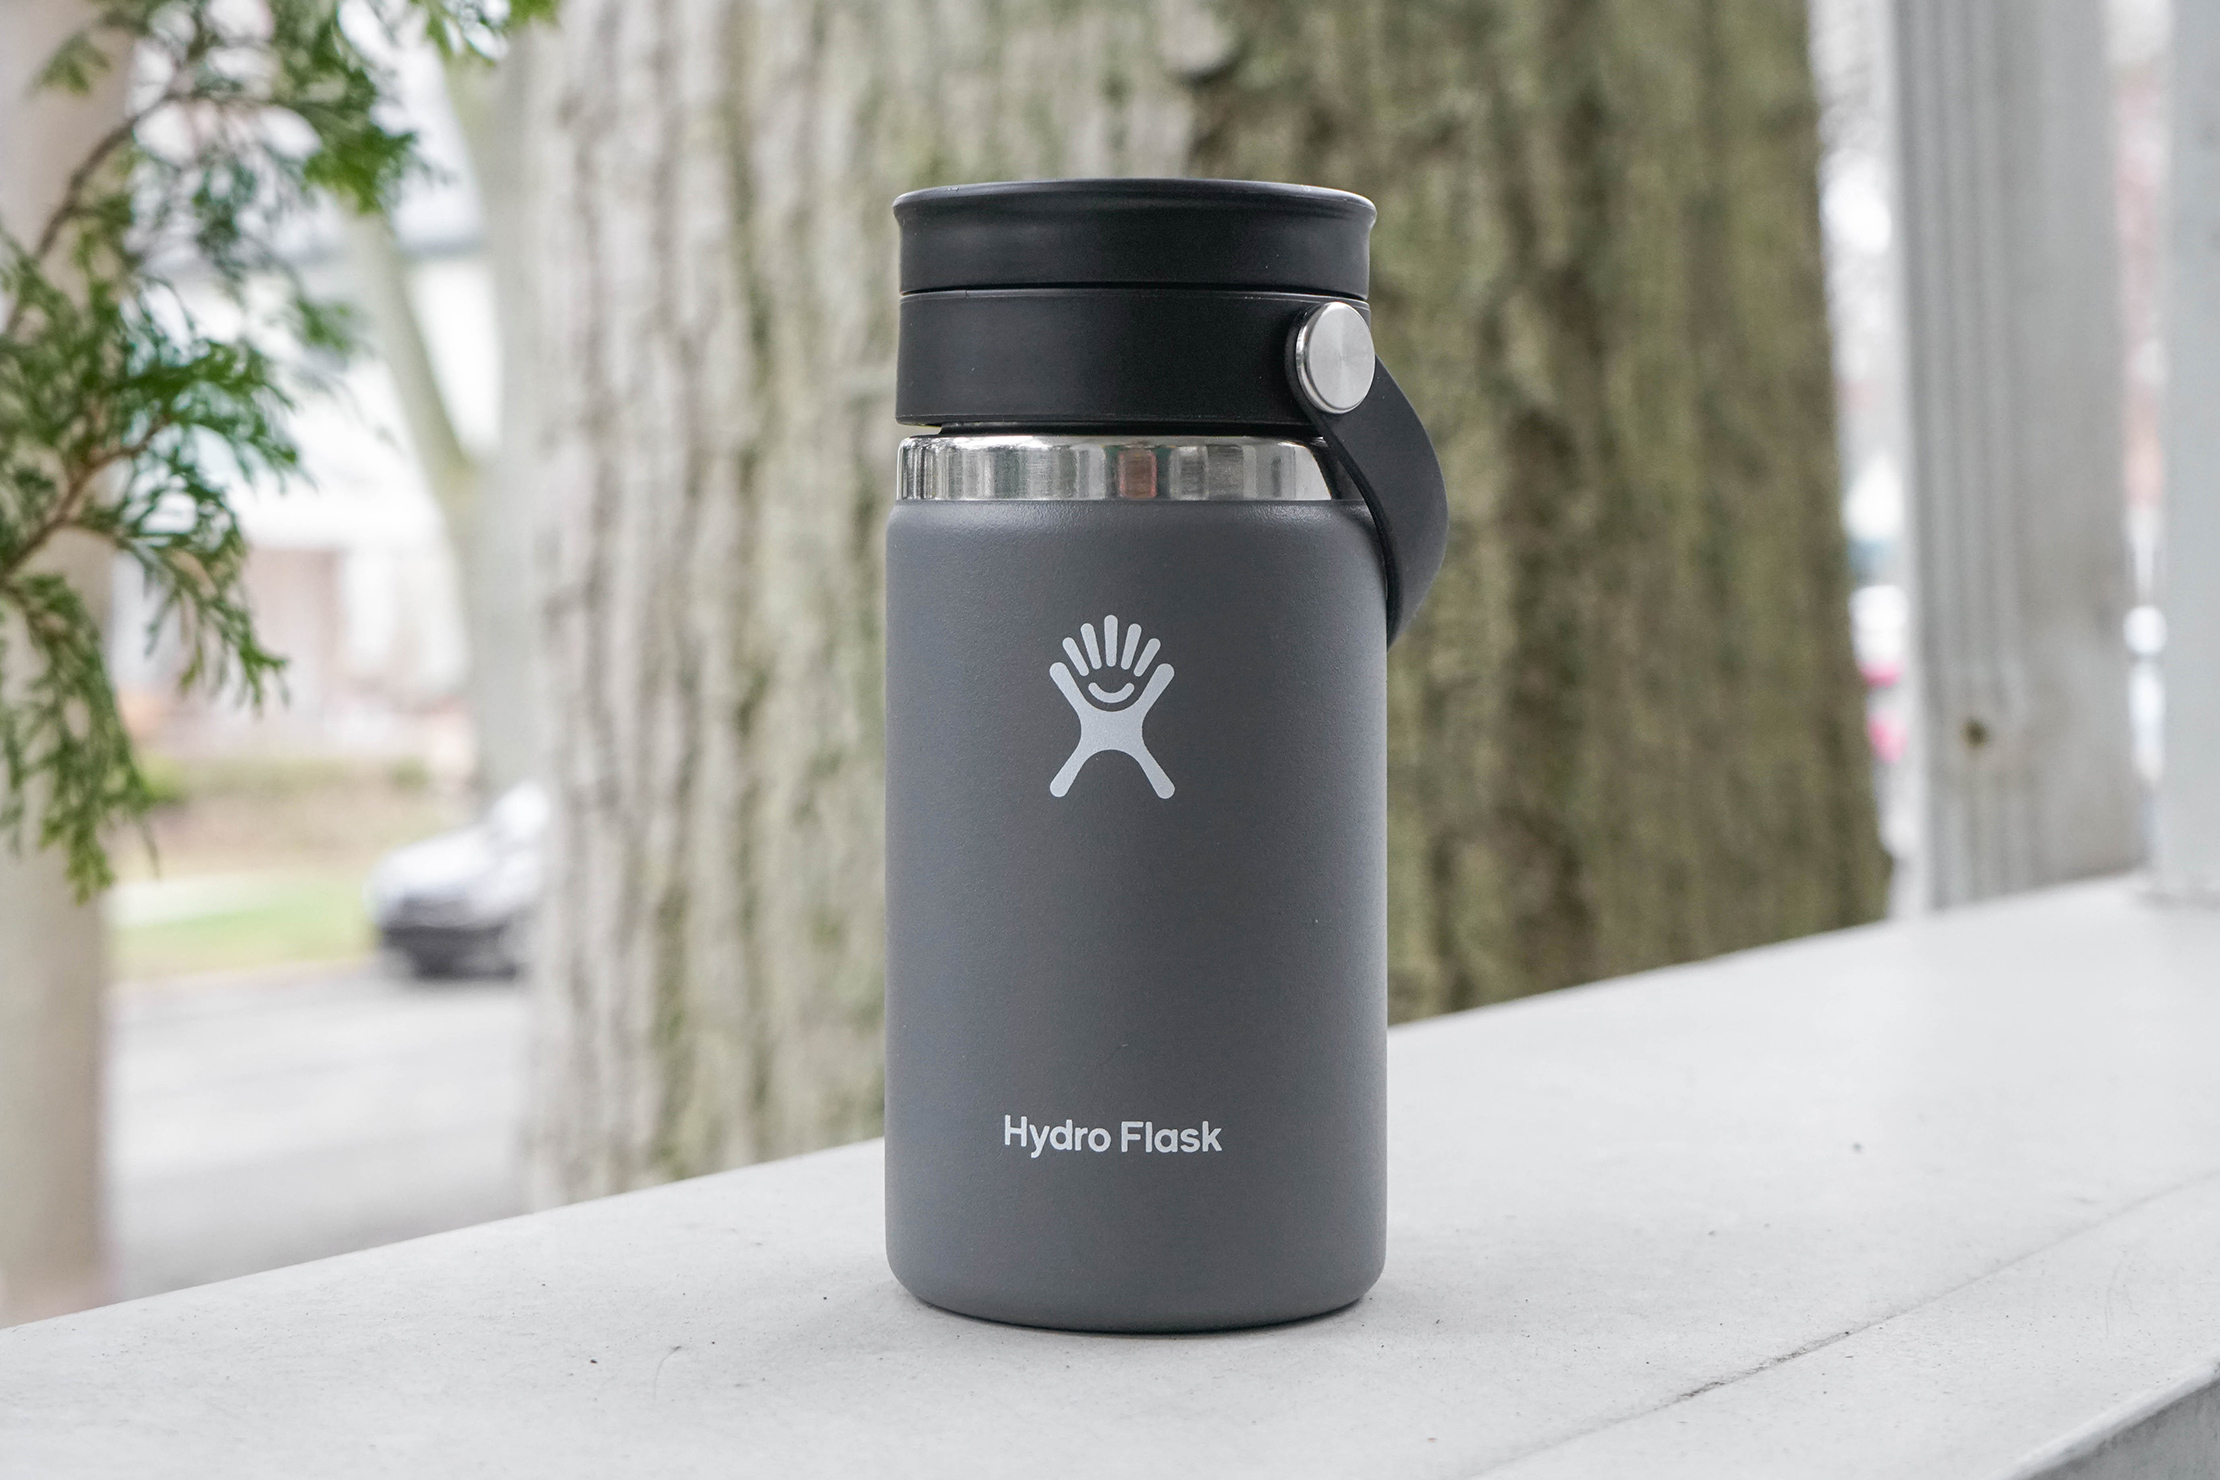 Hydro Flask 12oz Coffee With Flex Sip Lid In Detroit